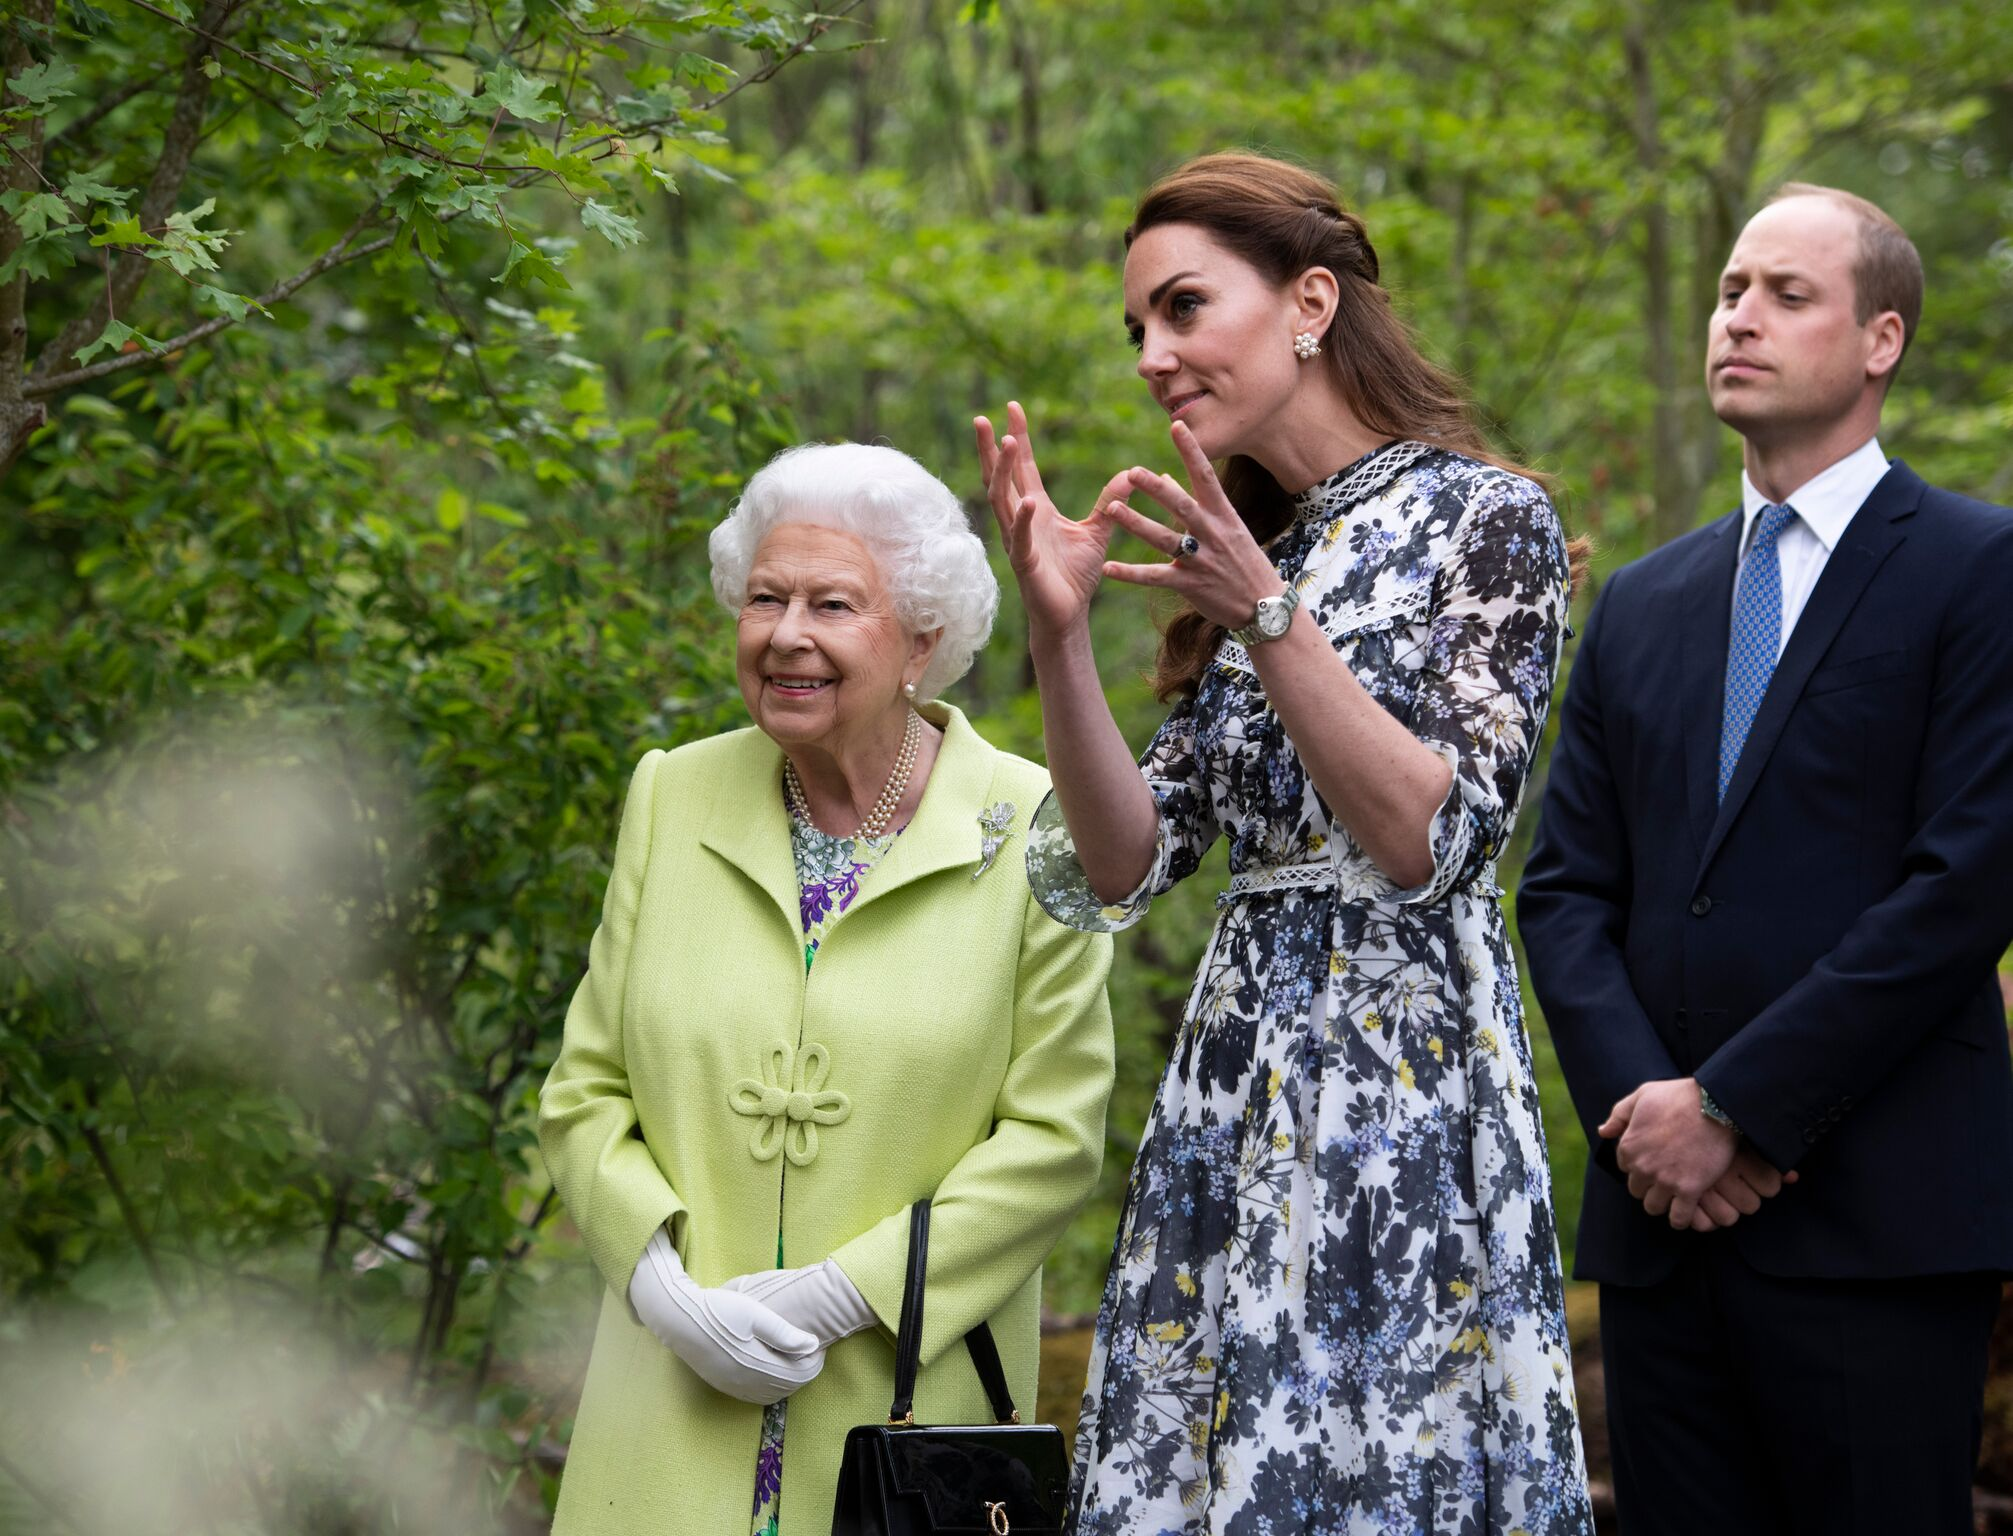 Queen Elizabeth II is shown around 'Back to Nature' by Prince William and Catherine, Duchess of Cambridge | Getty Images / Global Images Ukraine